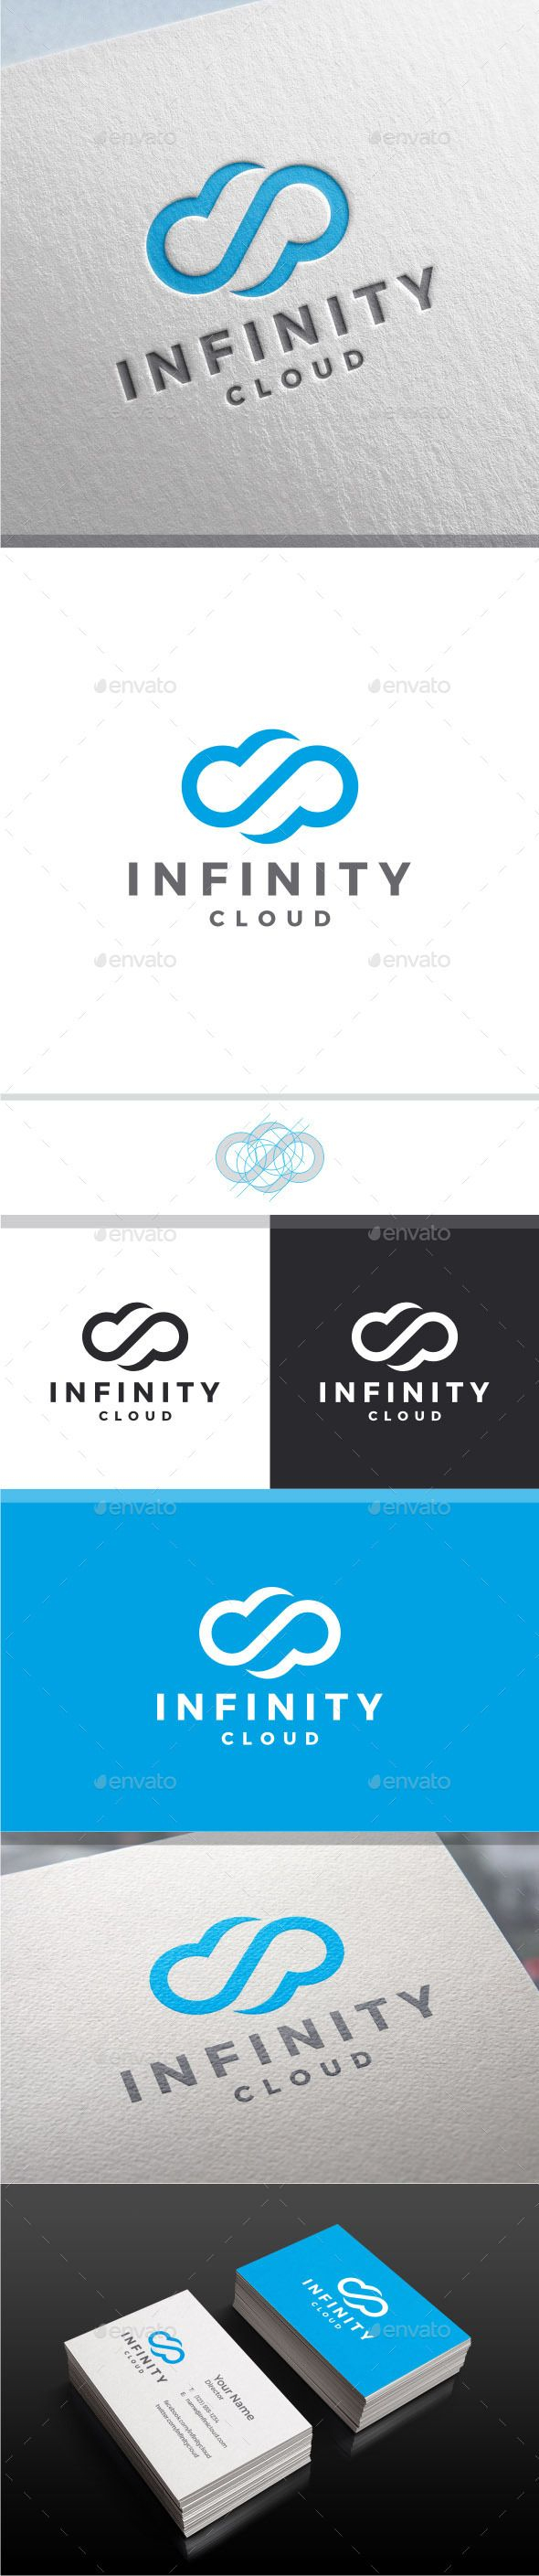 Blue color is one of my favorite color and combine a logo that is easy to drawn just makes it perfect.